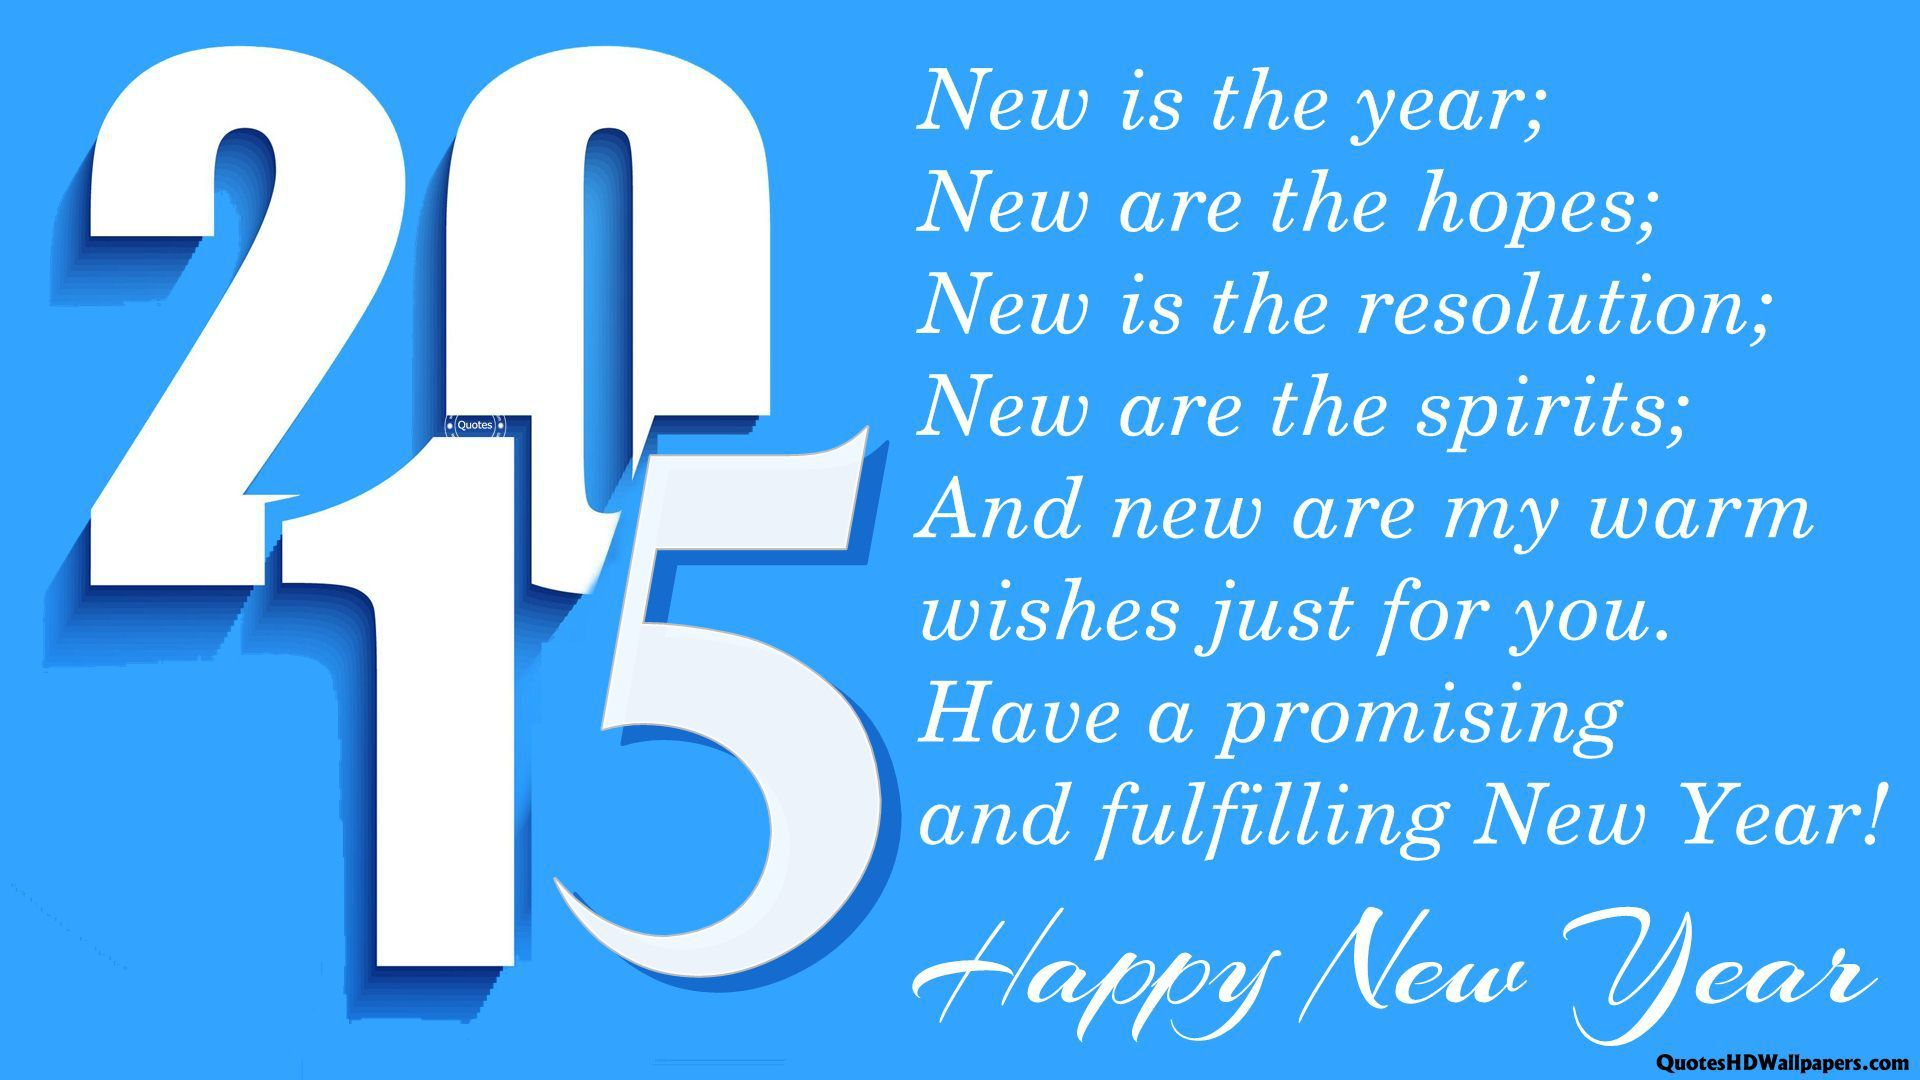 wishing you all a peaceful new year happy new year 2015 greetings wallpaper